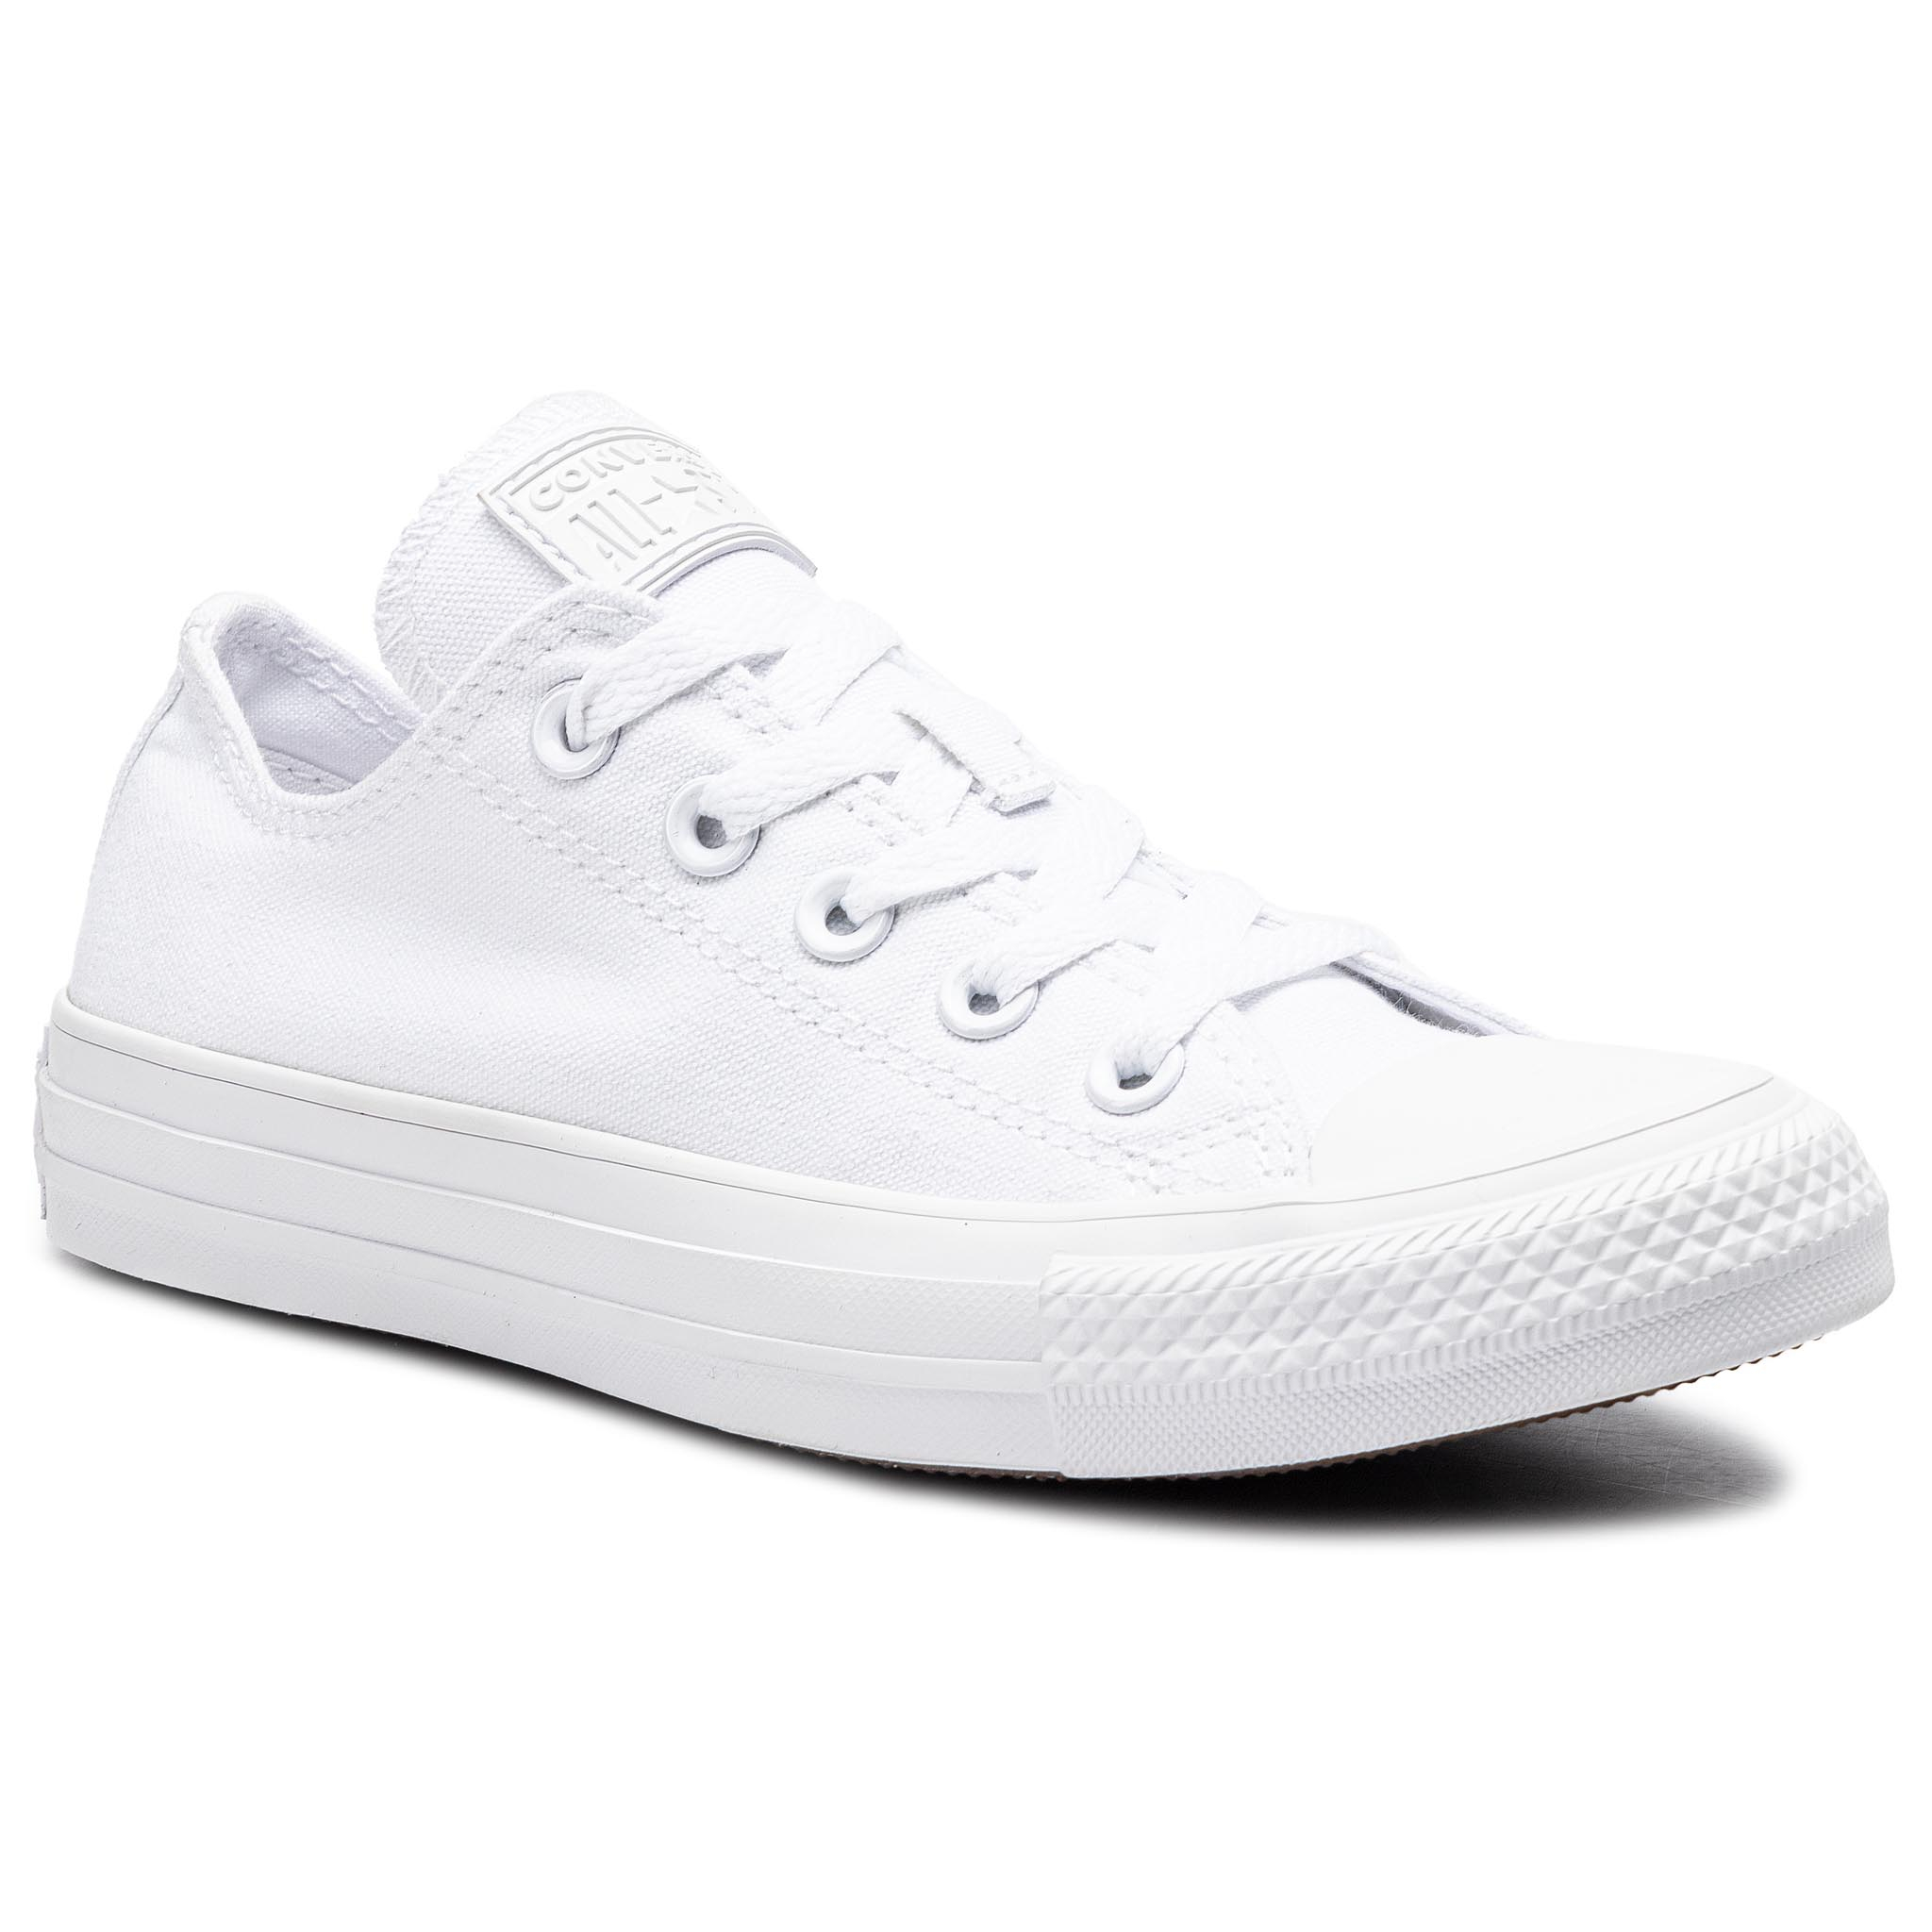 Teniși Converse - Ct As Sp Ox 1u647 White Monochrome imagine epantofi.ro 2021